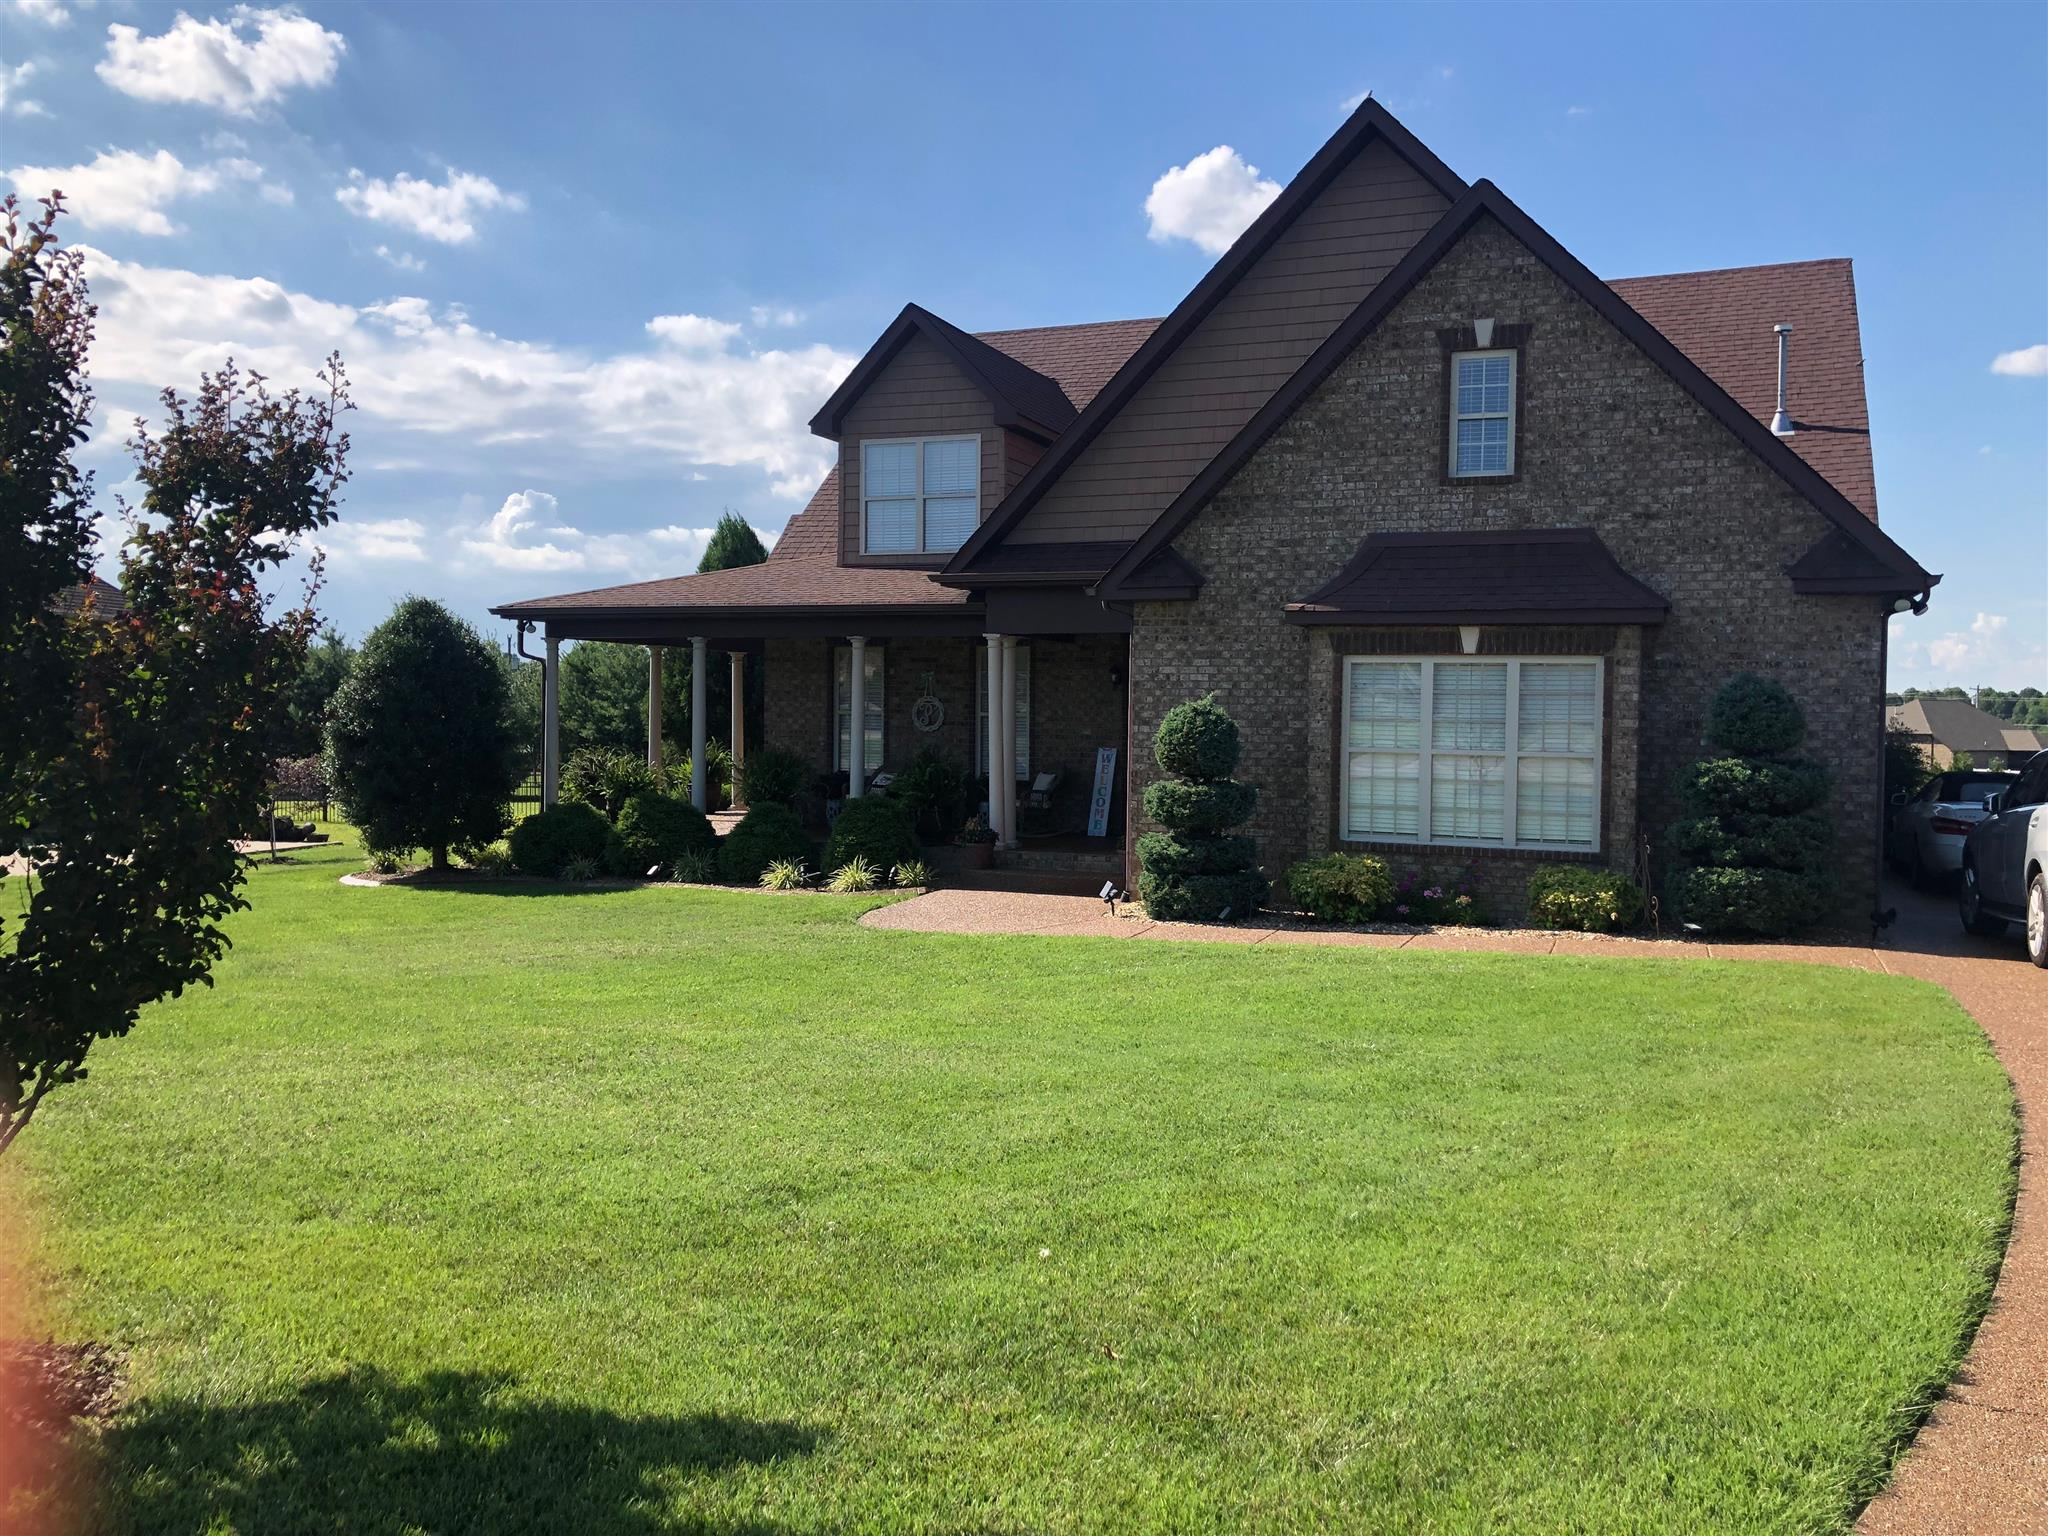 1007 Glasgow Ln, Greenbrier, TN 37073 - Greenbrier, TN real estate listing